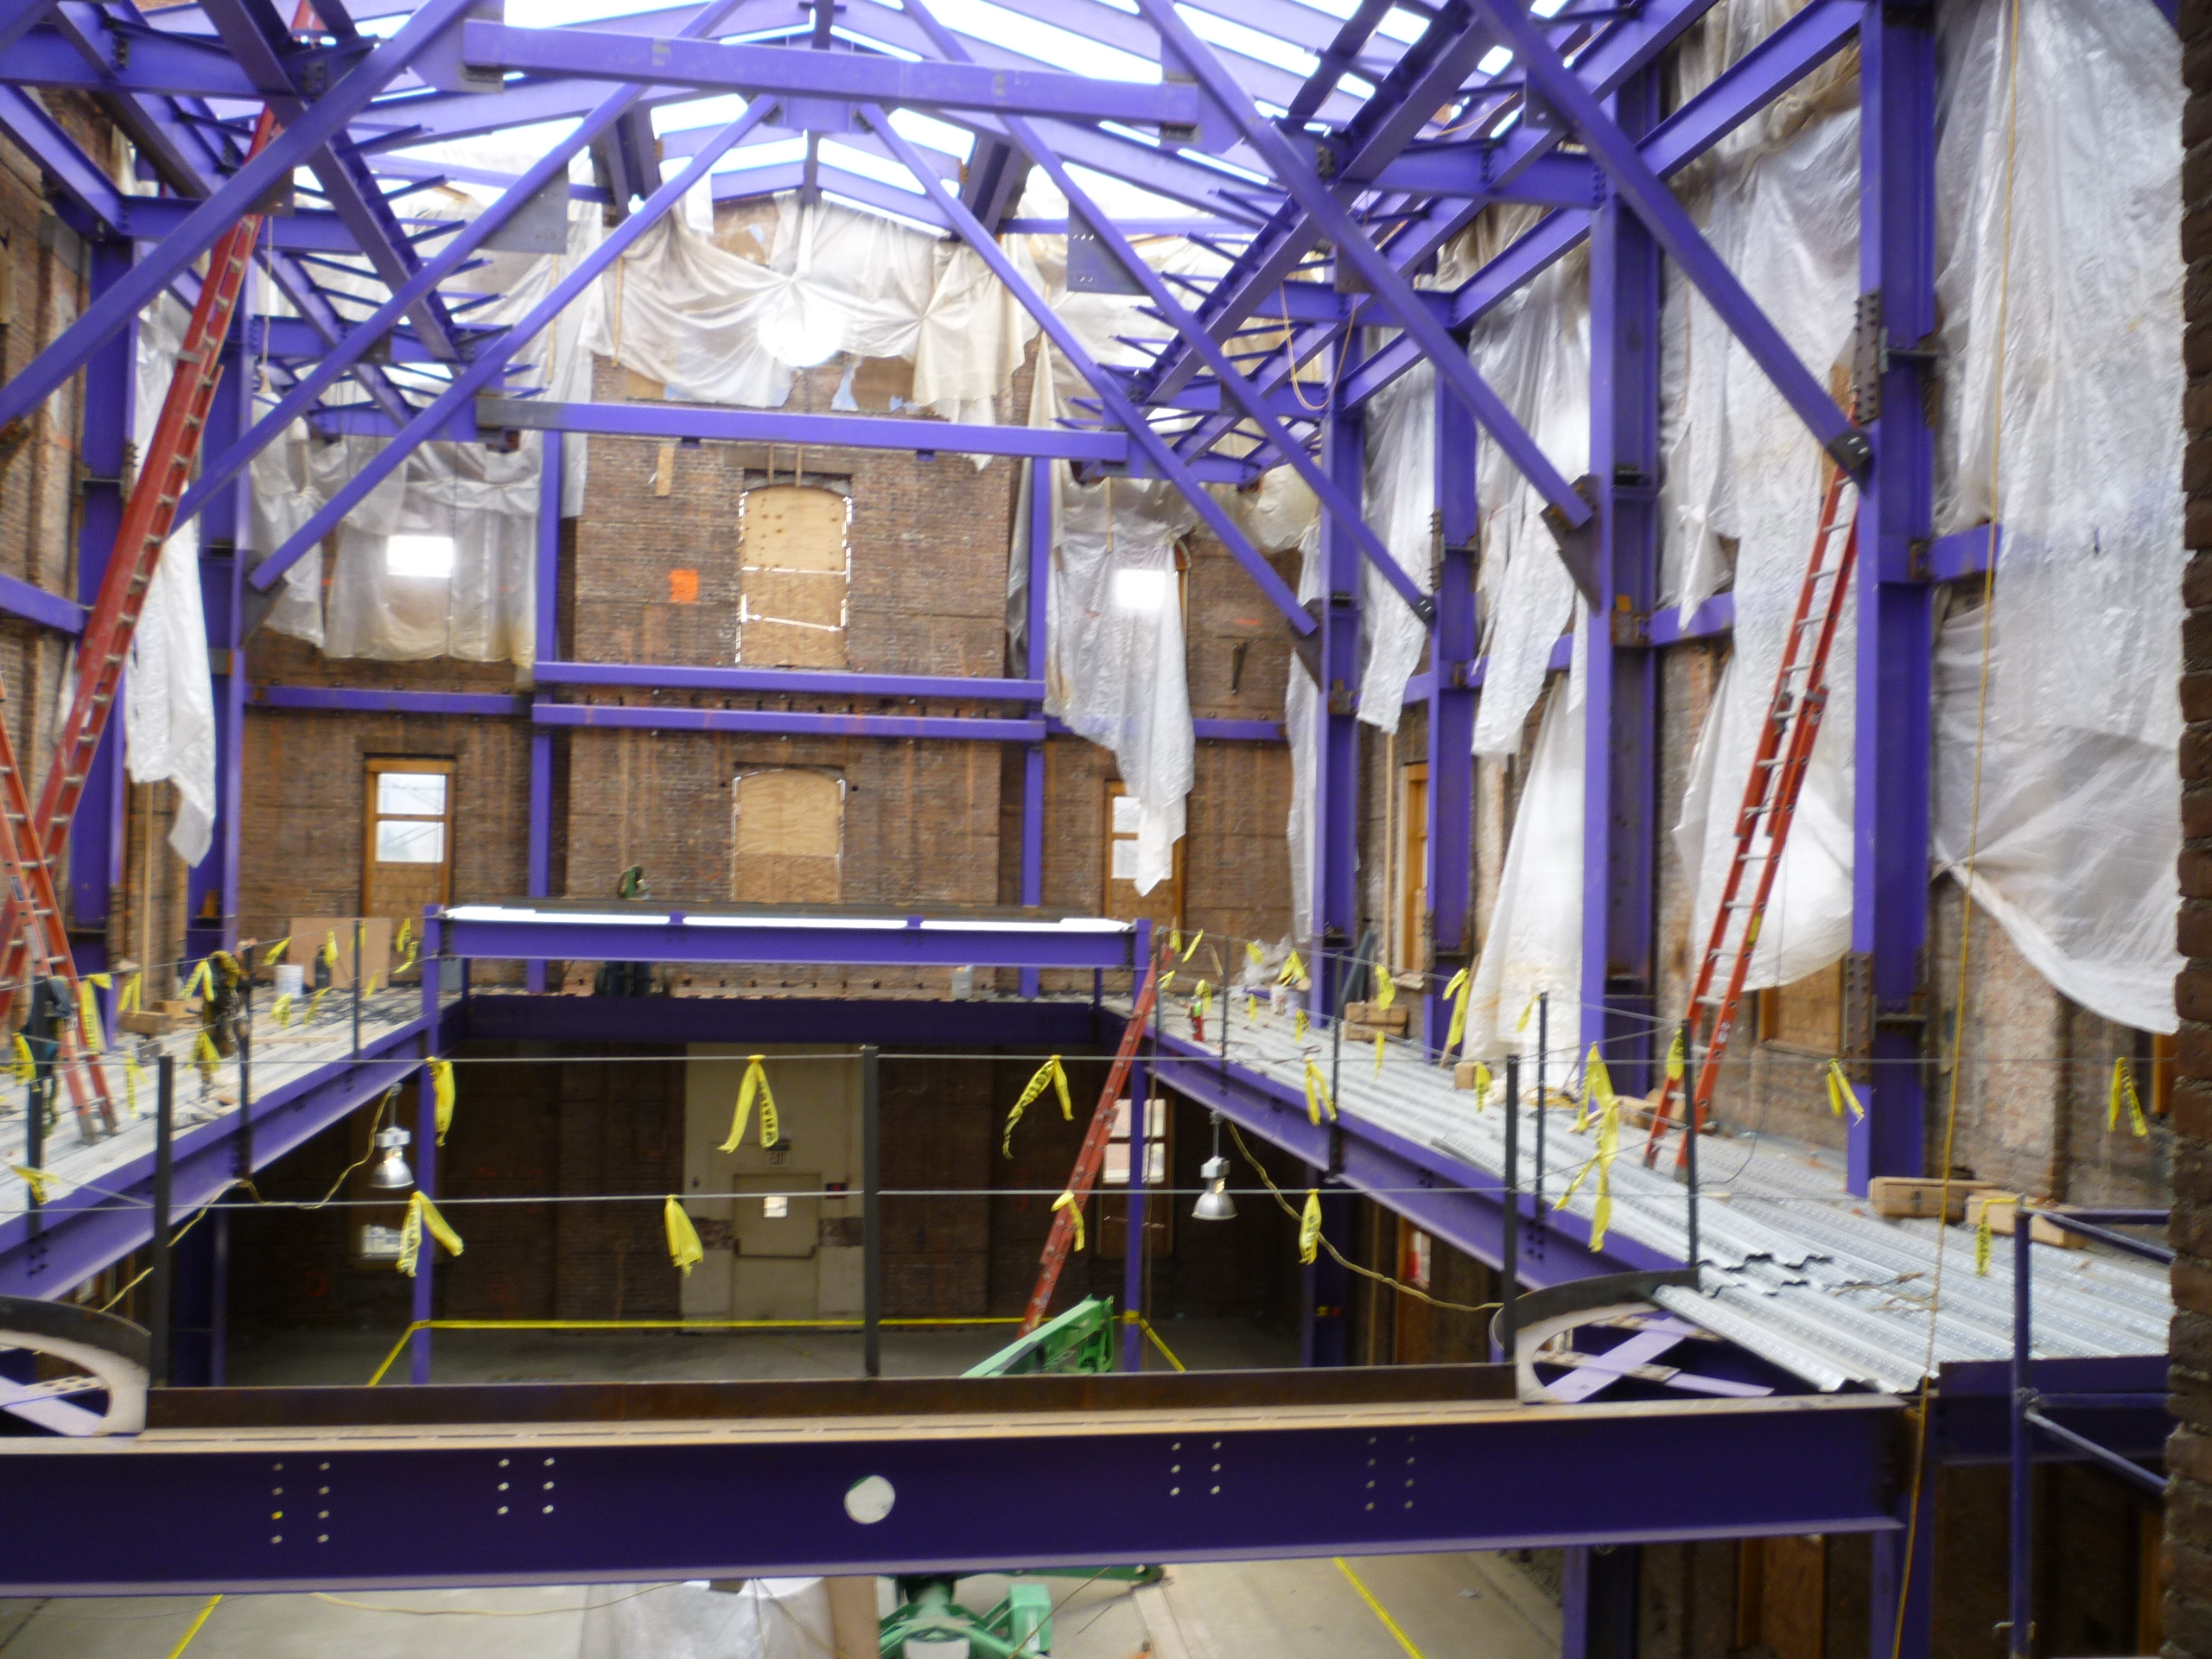 John P. Stopen Cowles Hall Elmira College Project interior construction